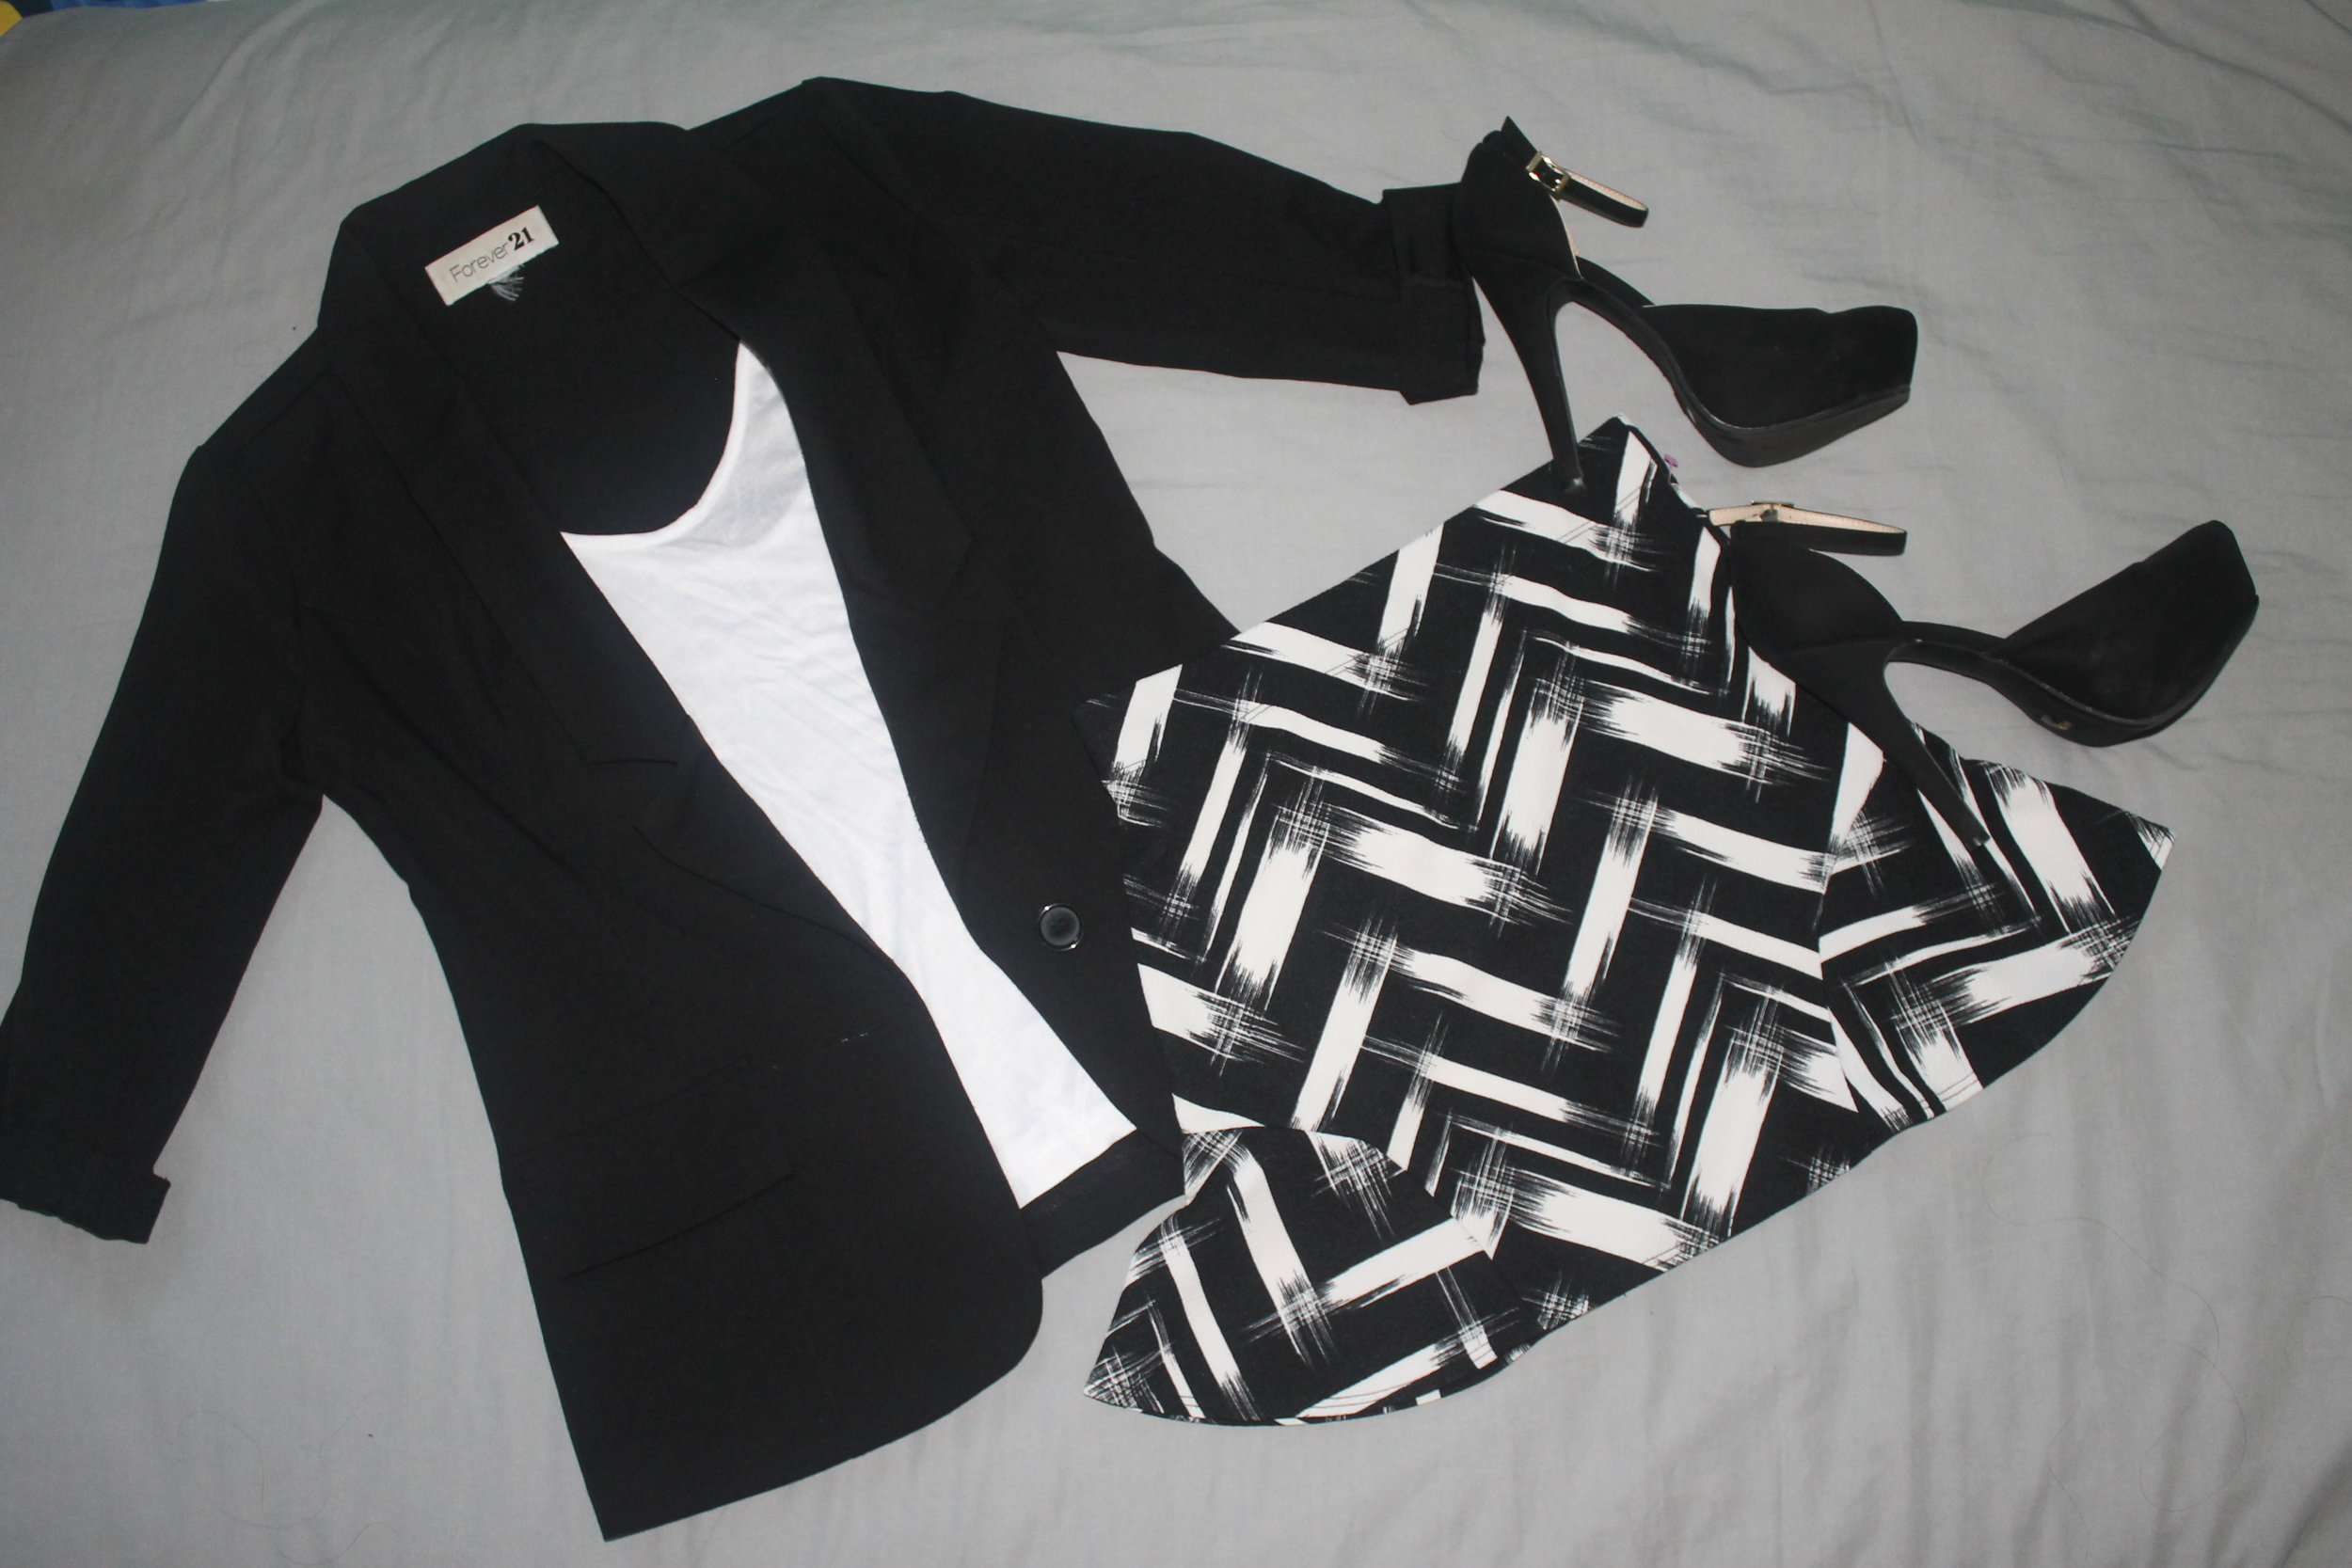 Example of a possible woman's outfit.